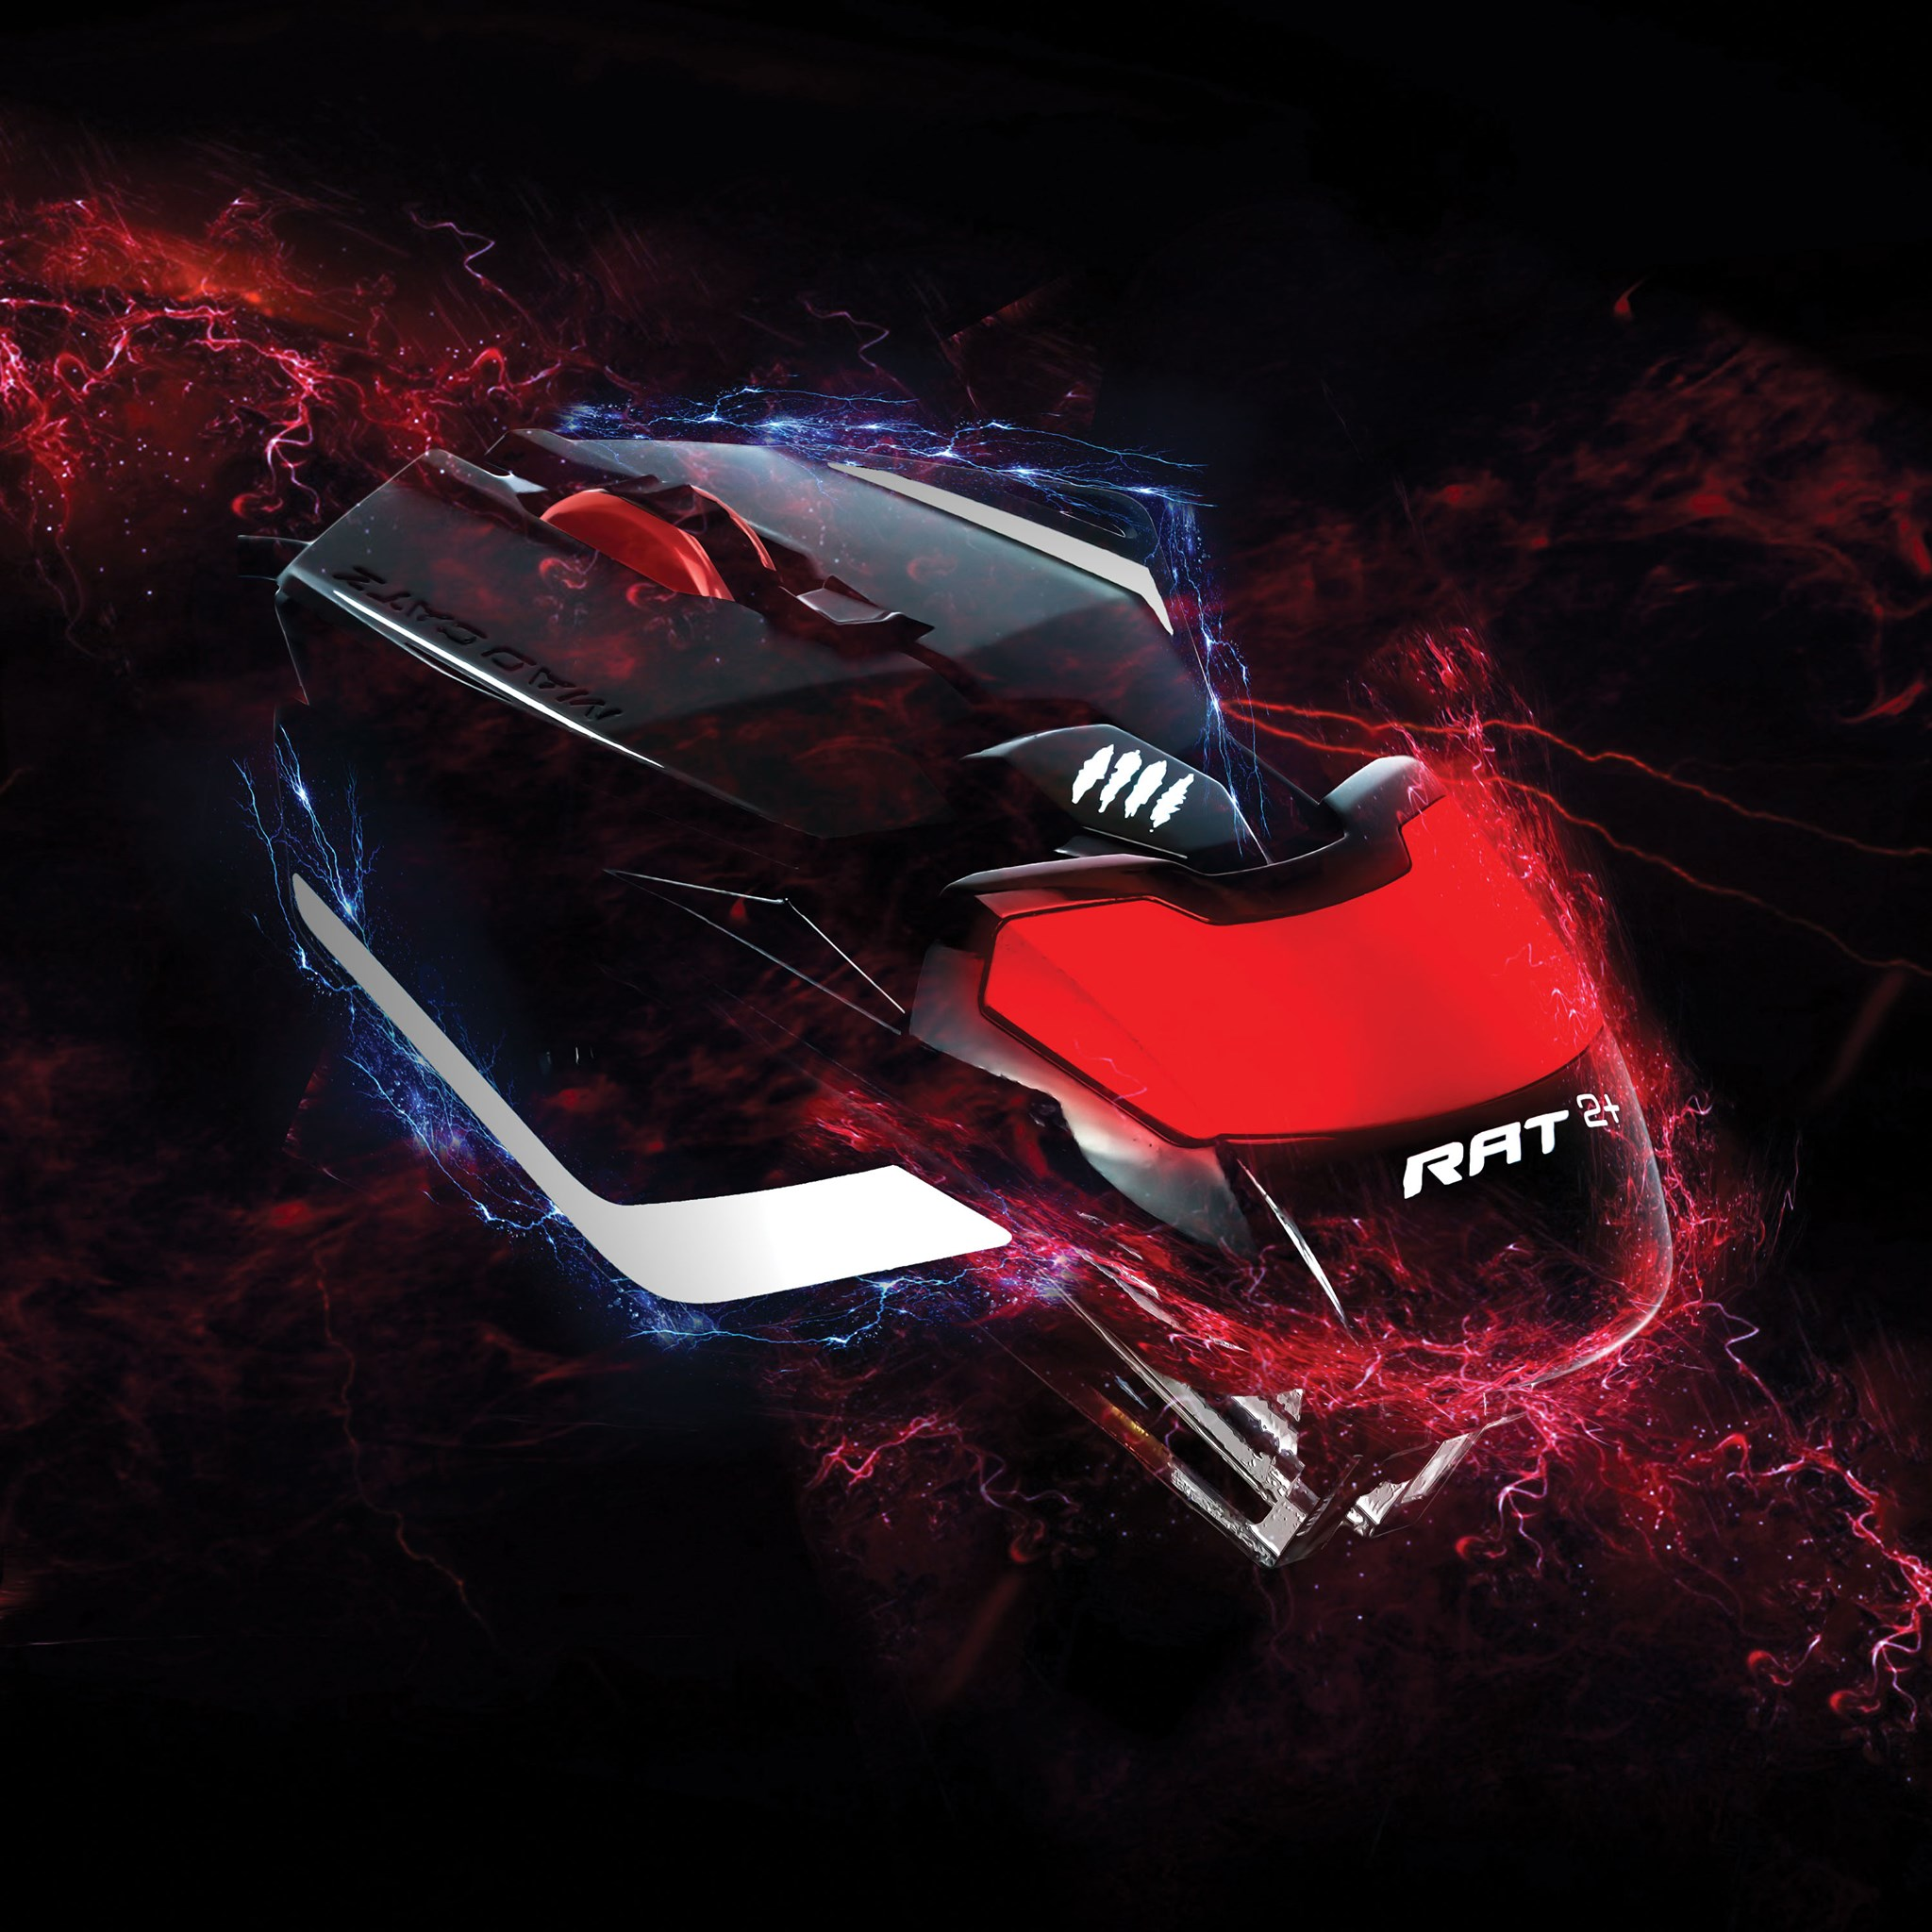 Upgrade your gaming with the Mad Catz R.A.T. 2+ Optical Gaming Mouse. Featuring multi-button functionality and a super lightweight design, the R.A.T. 2+ has the features you need and won't slow you down. #MadCatz